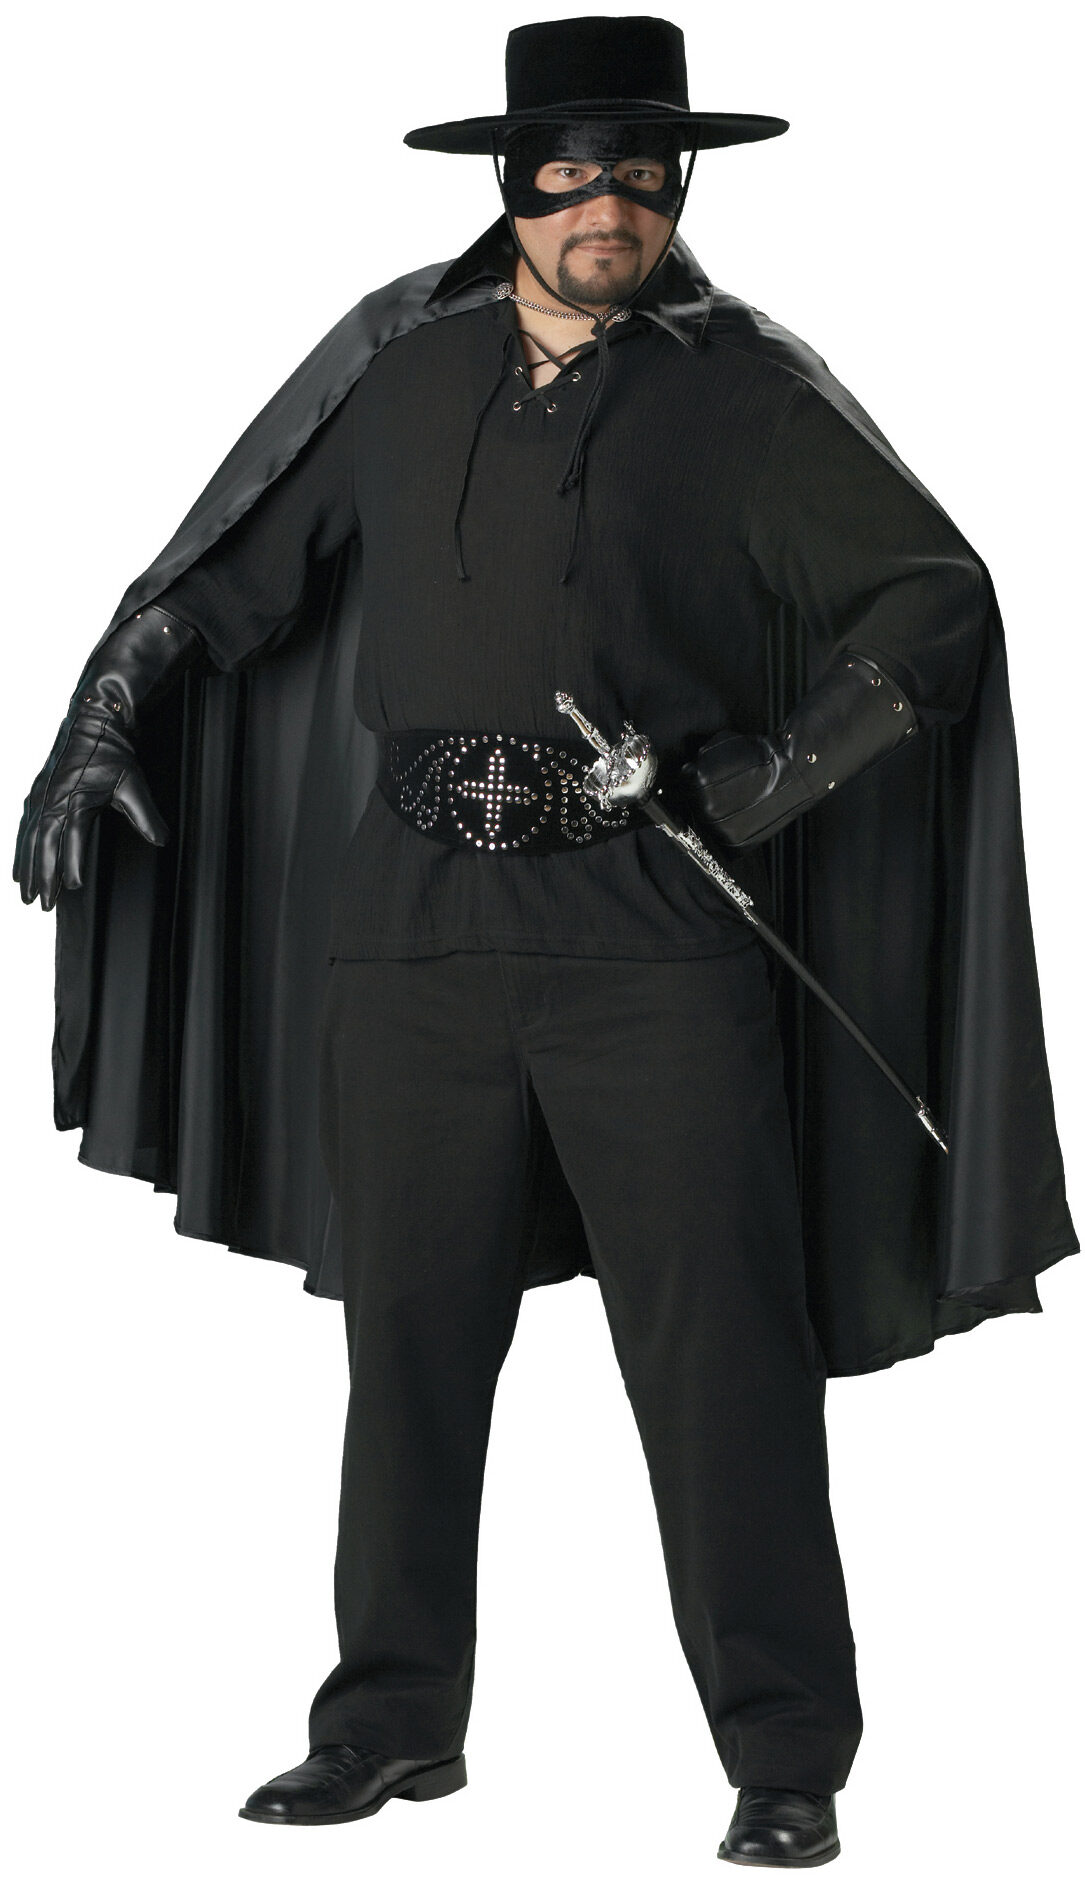 plus size superhero costumes for adults